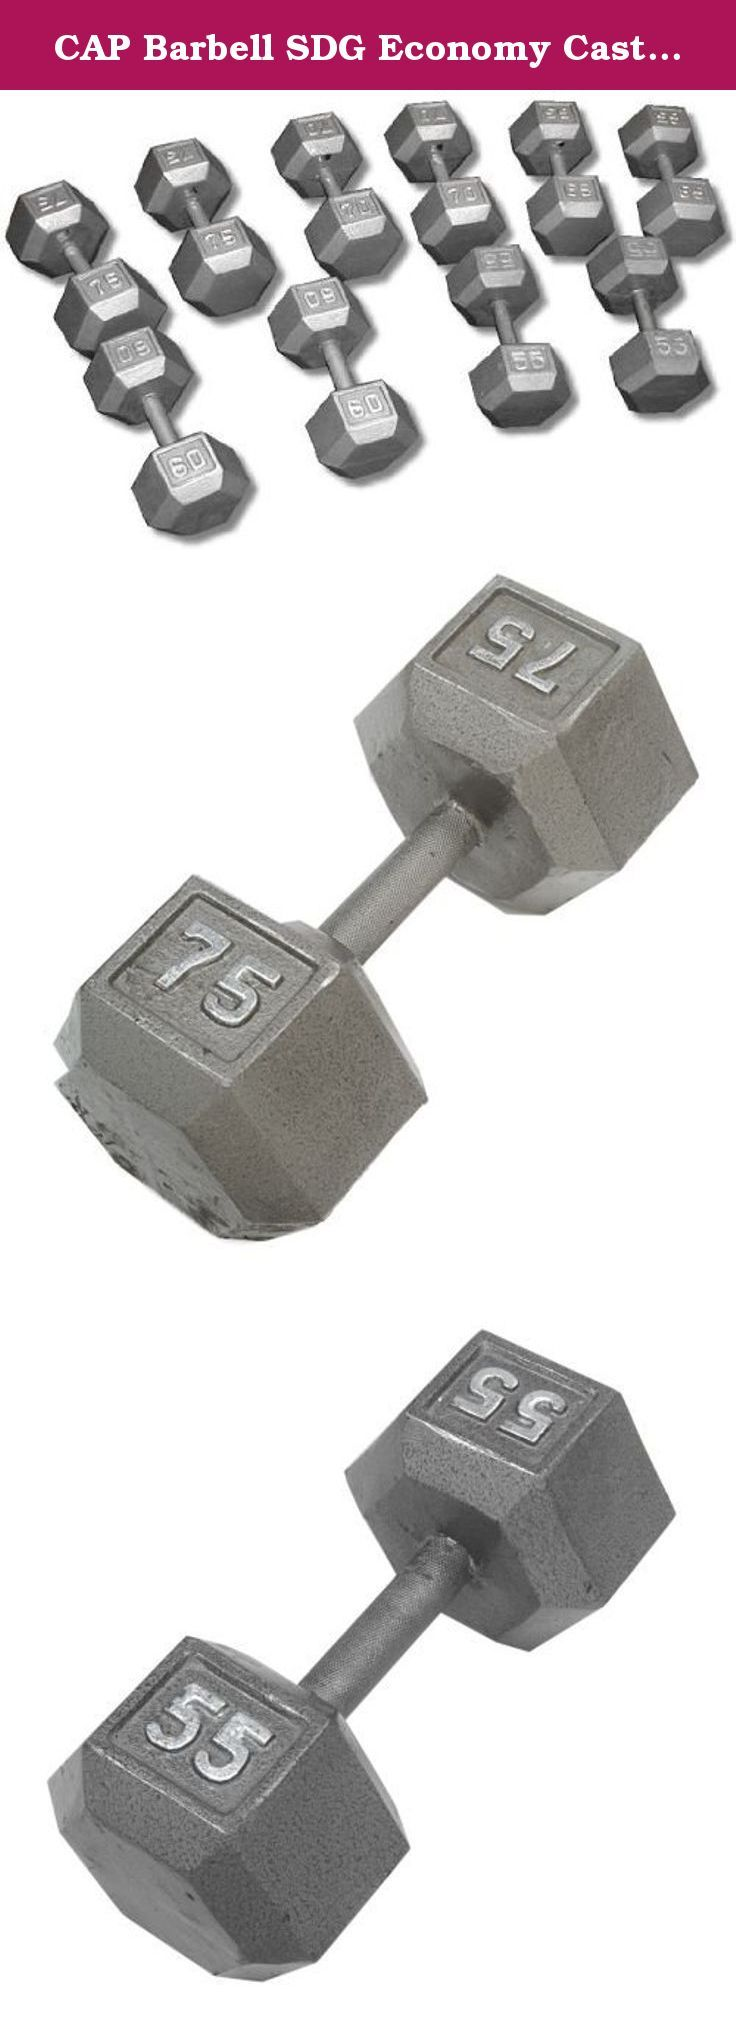 CAP Barbell SDG Economy Cast Iron Hex Dumbbell Set - 55 to 100 lbs (10 pairs) - Garage Gym Dumbbell Expansion Set. Economy Cast Iron Hex Dumbbell Sets from CAP Barbell - Hex dumbbell sets are often the perfect dumbbell choice for home gym and garage gym use. They are economical and space efficient and for a lot of people that is the most important criteria when purchasing dumbbells for home use. Hexagonal dumbbell heads are non-rolling when set down on the floor or racks. Cast iron heads...